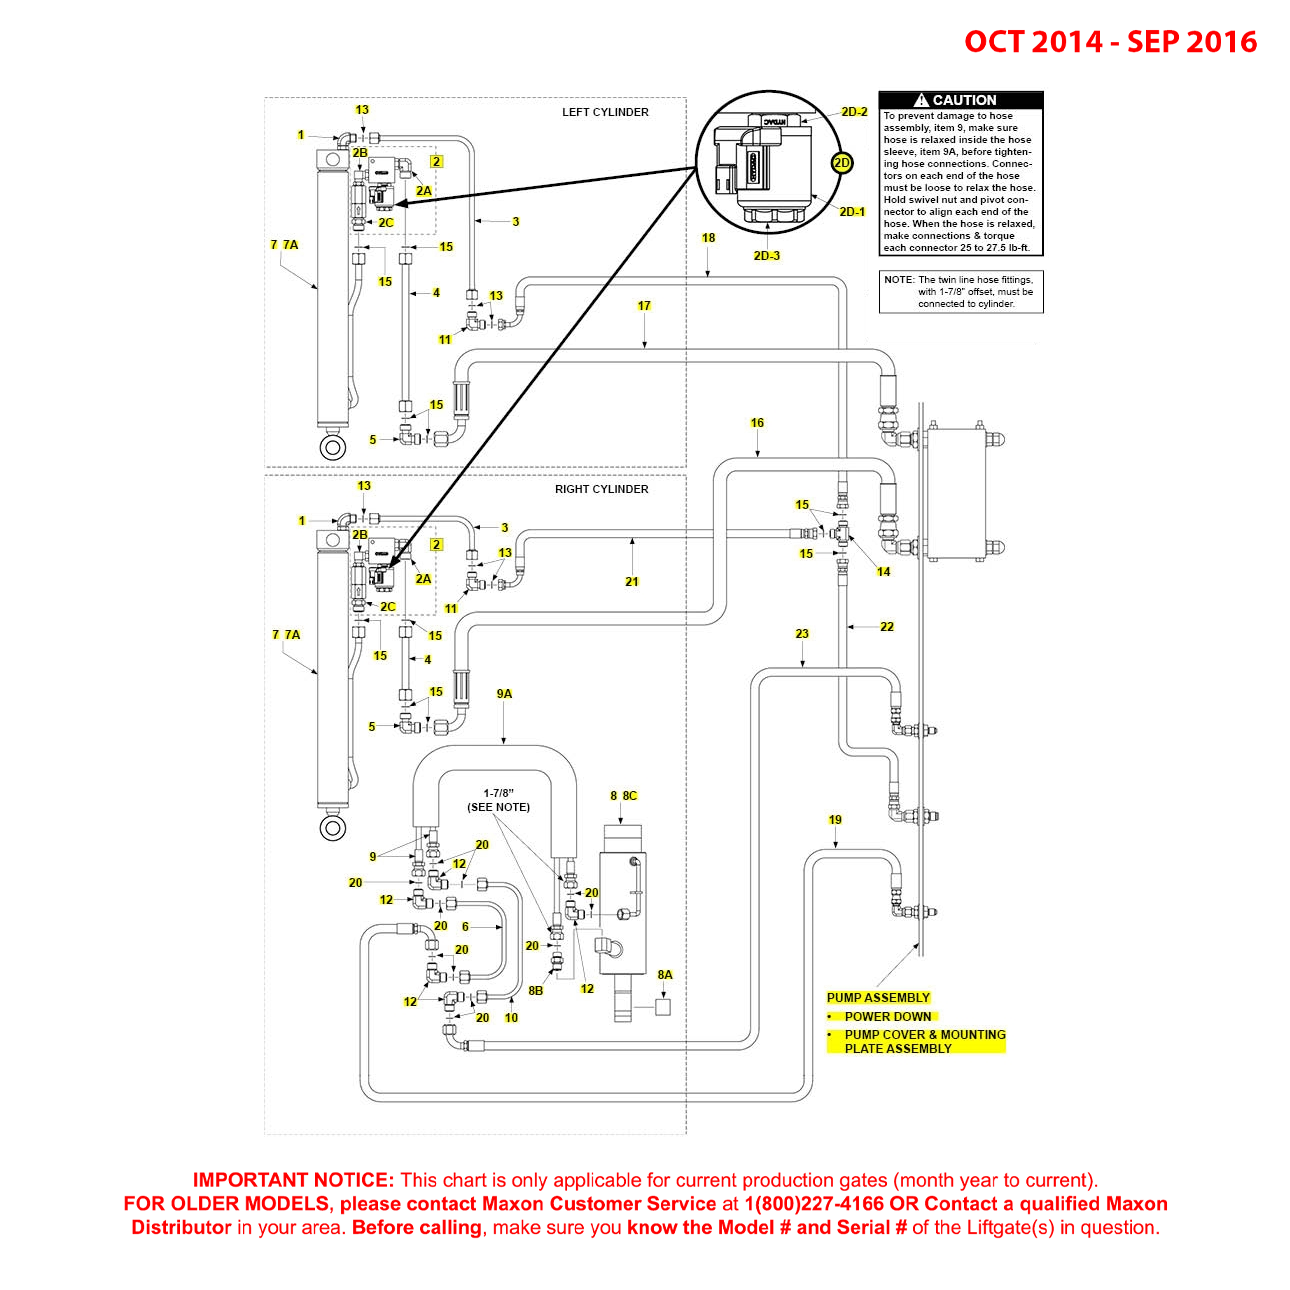 BMR (Oct 2014 - Sep 2016) Power Down Hydraulic Systems Diagram